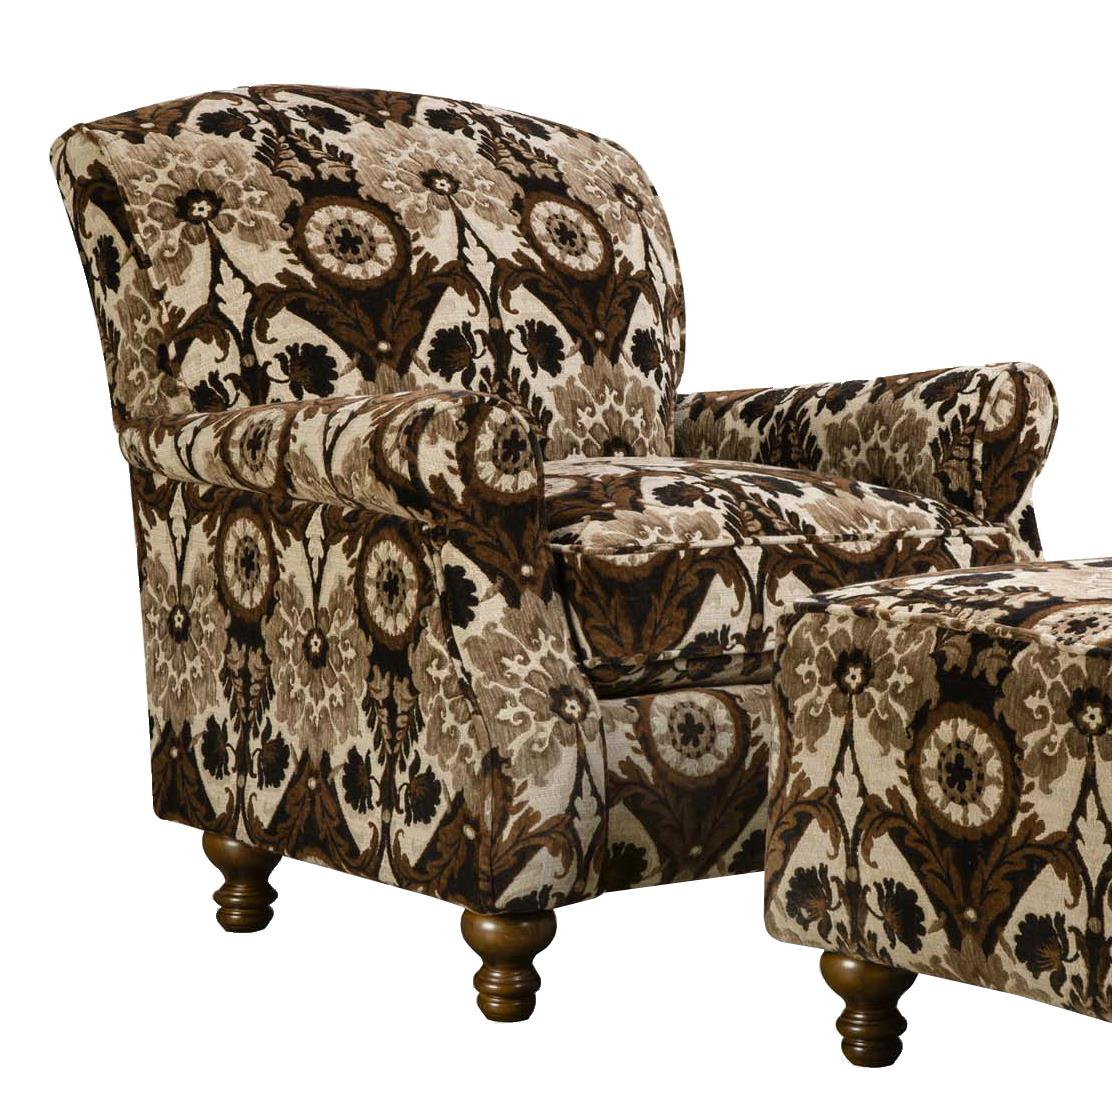 Corinthian 8010 Contrast Accent Chair - Item Number: AC2380-Charleston-BlackPearl